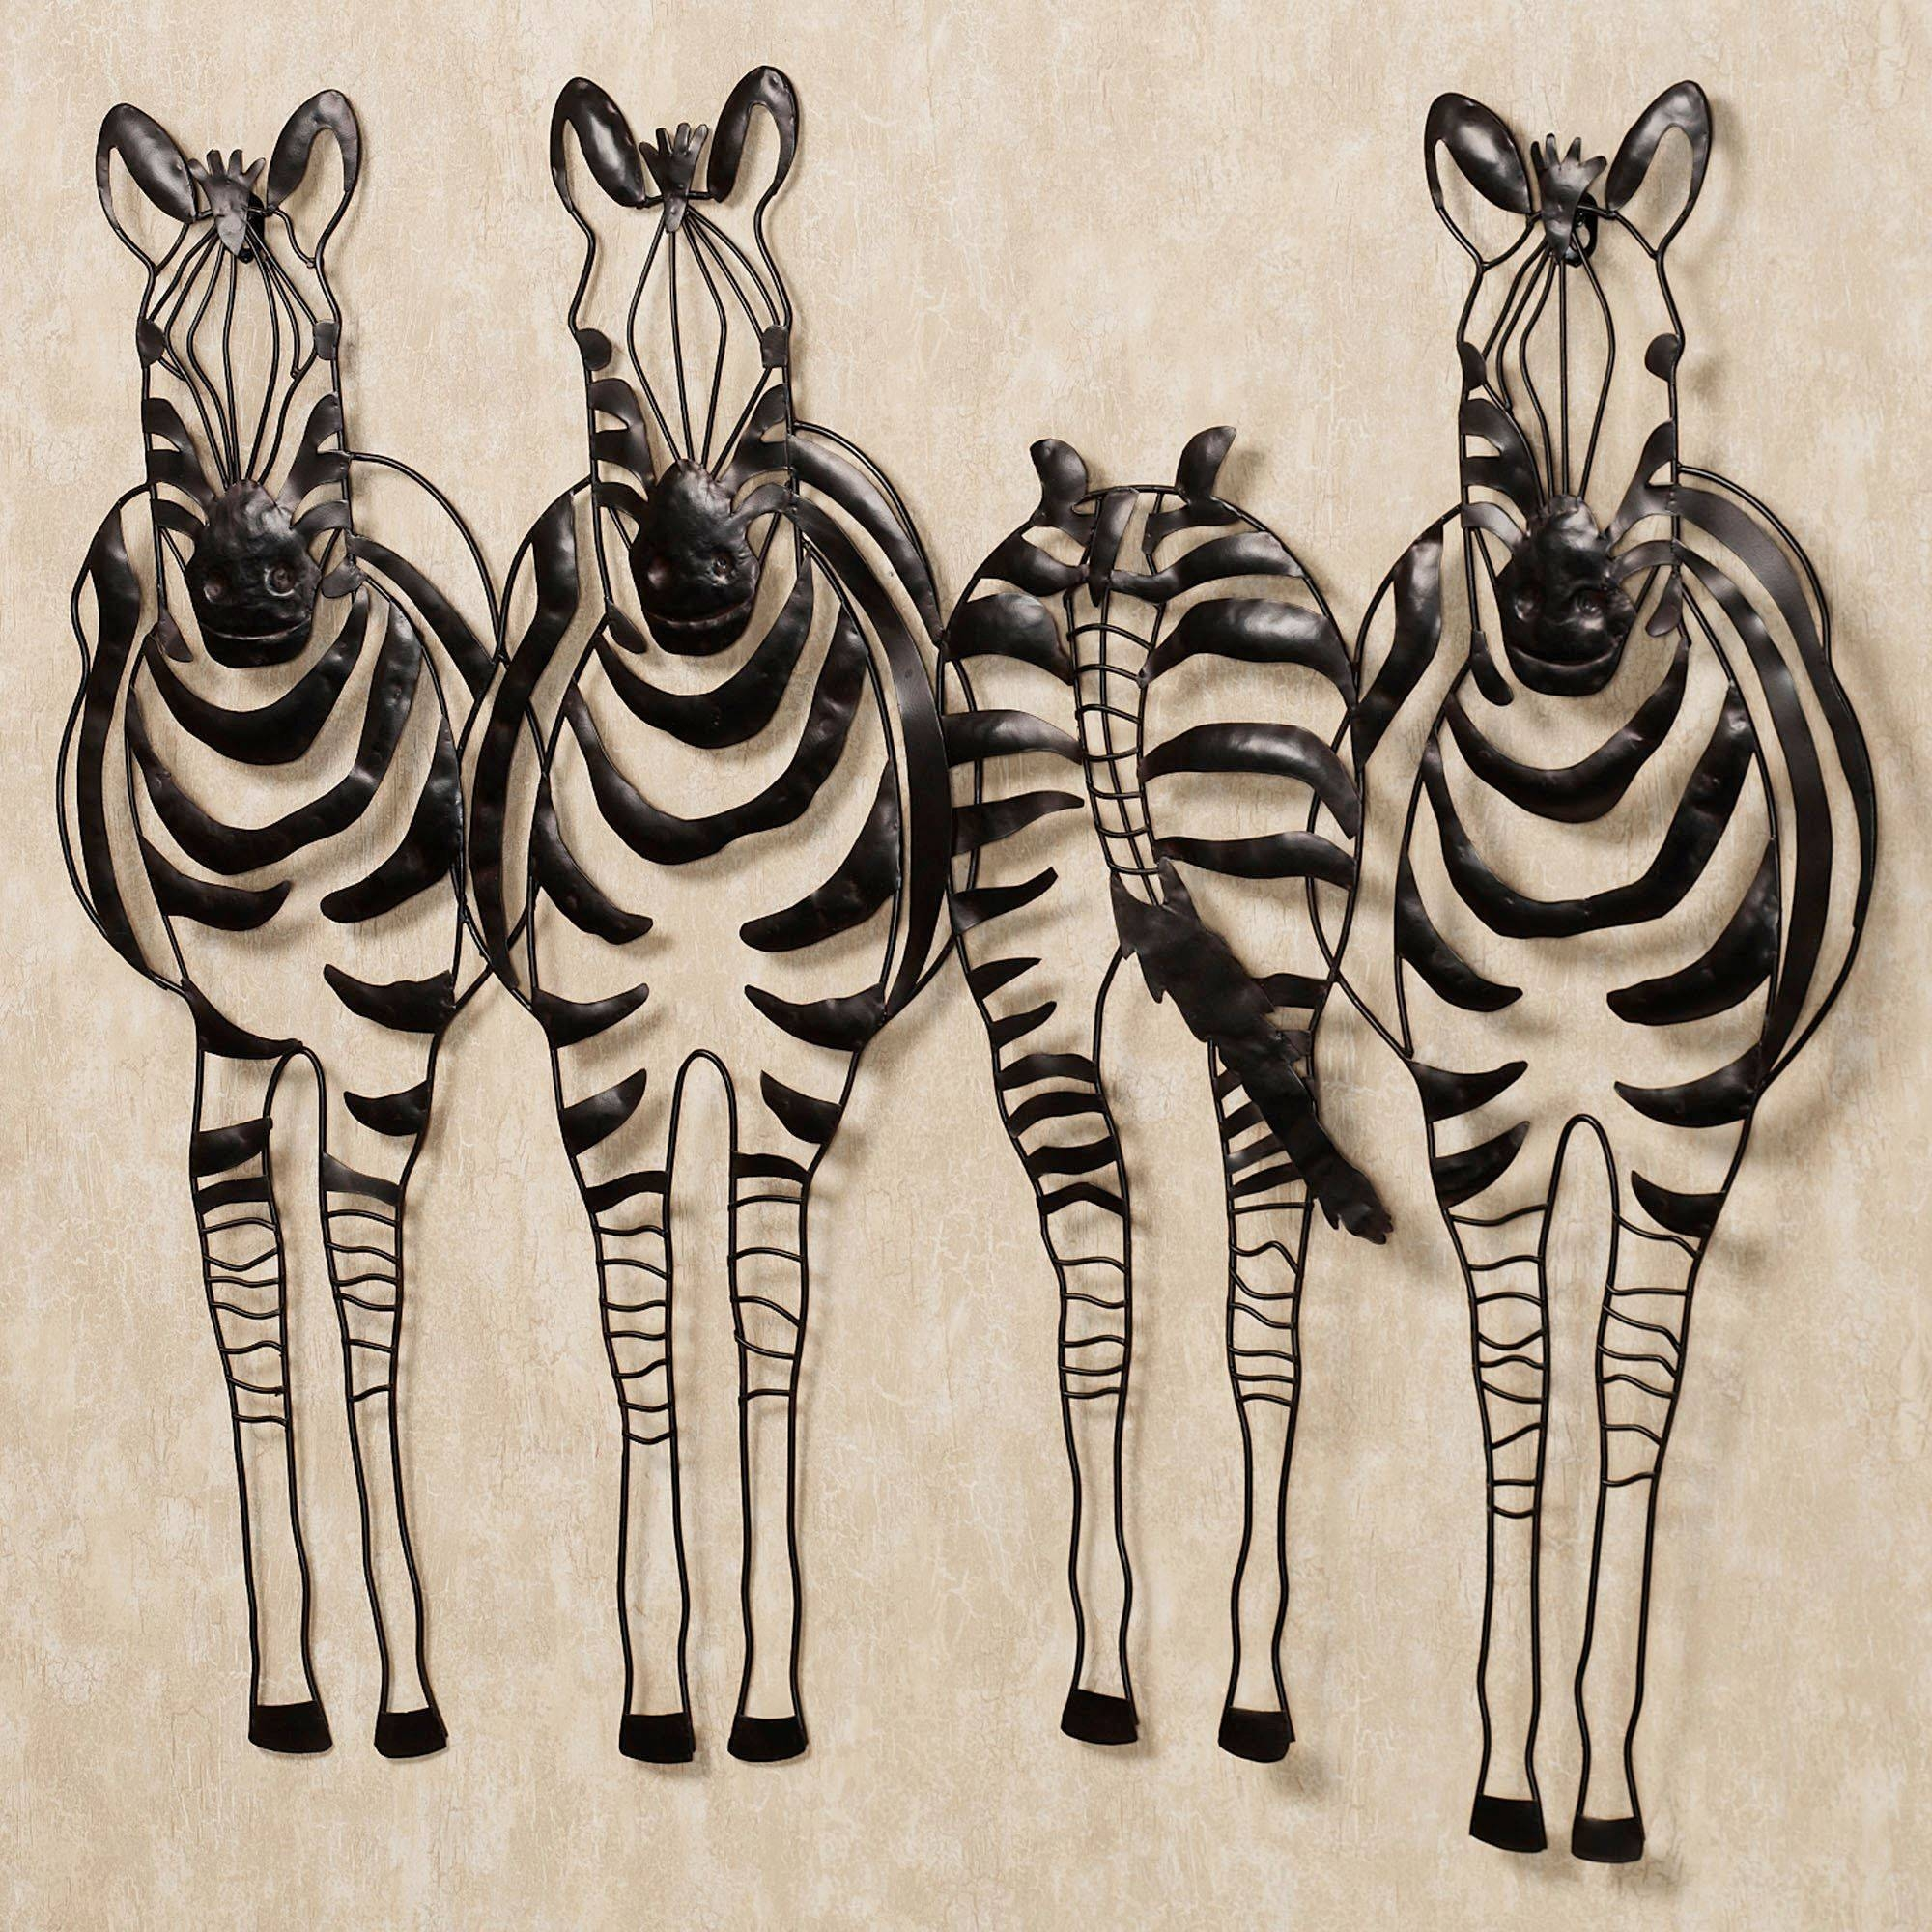 Animal Metal Wall Sculptures | Touch Of Class With Regard To Most Recent Animal Metal Wall Art (View 1 of 20)